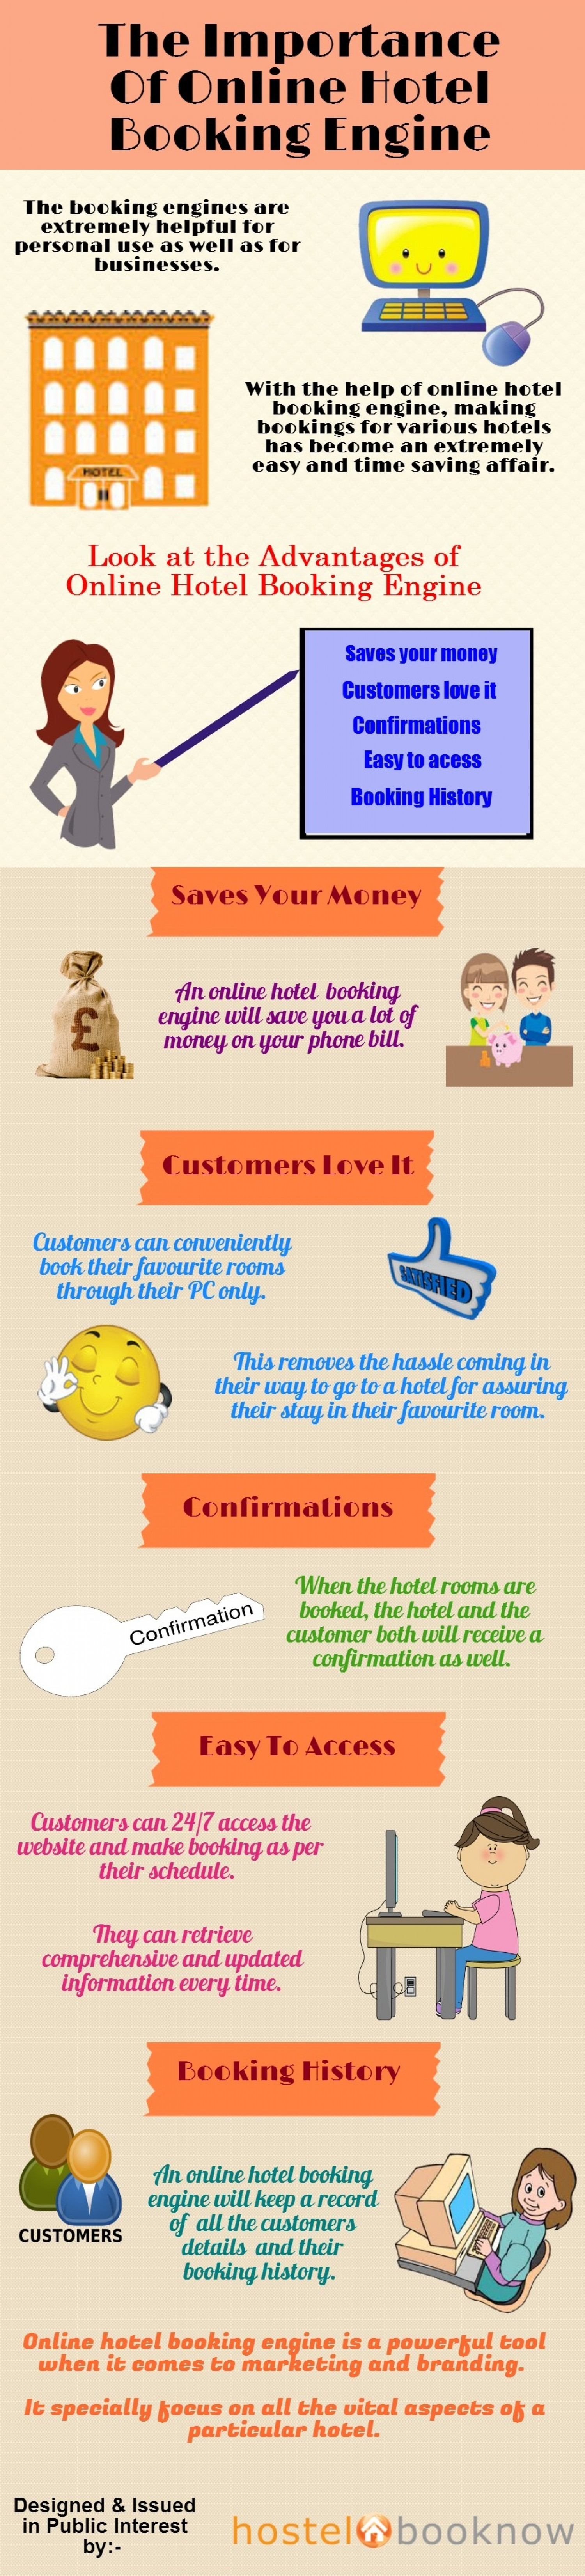 The Importance of Online Hotel Booking Engine Infographic